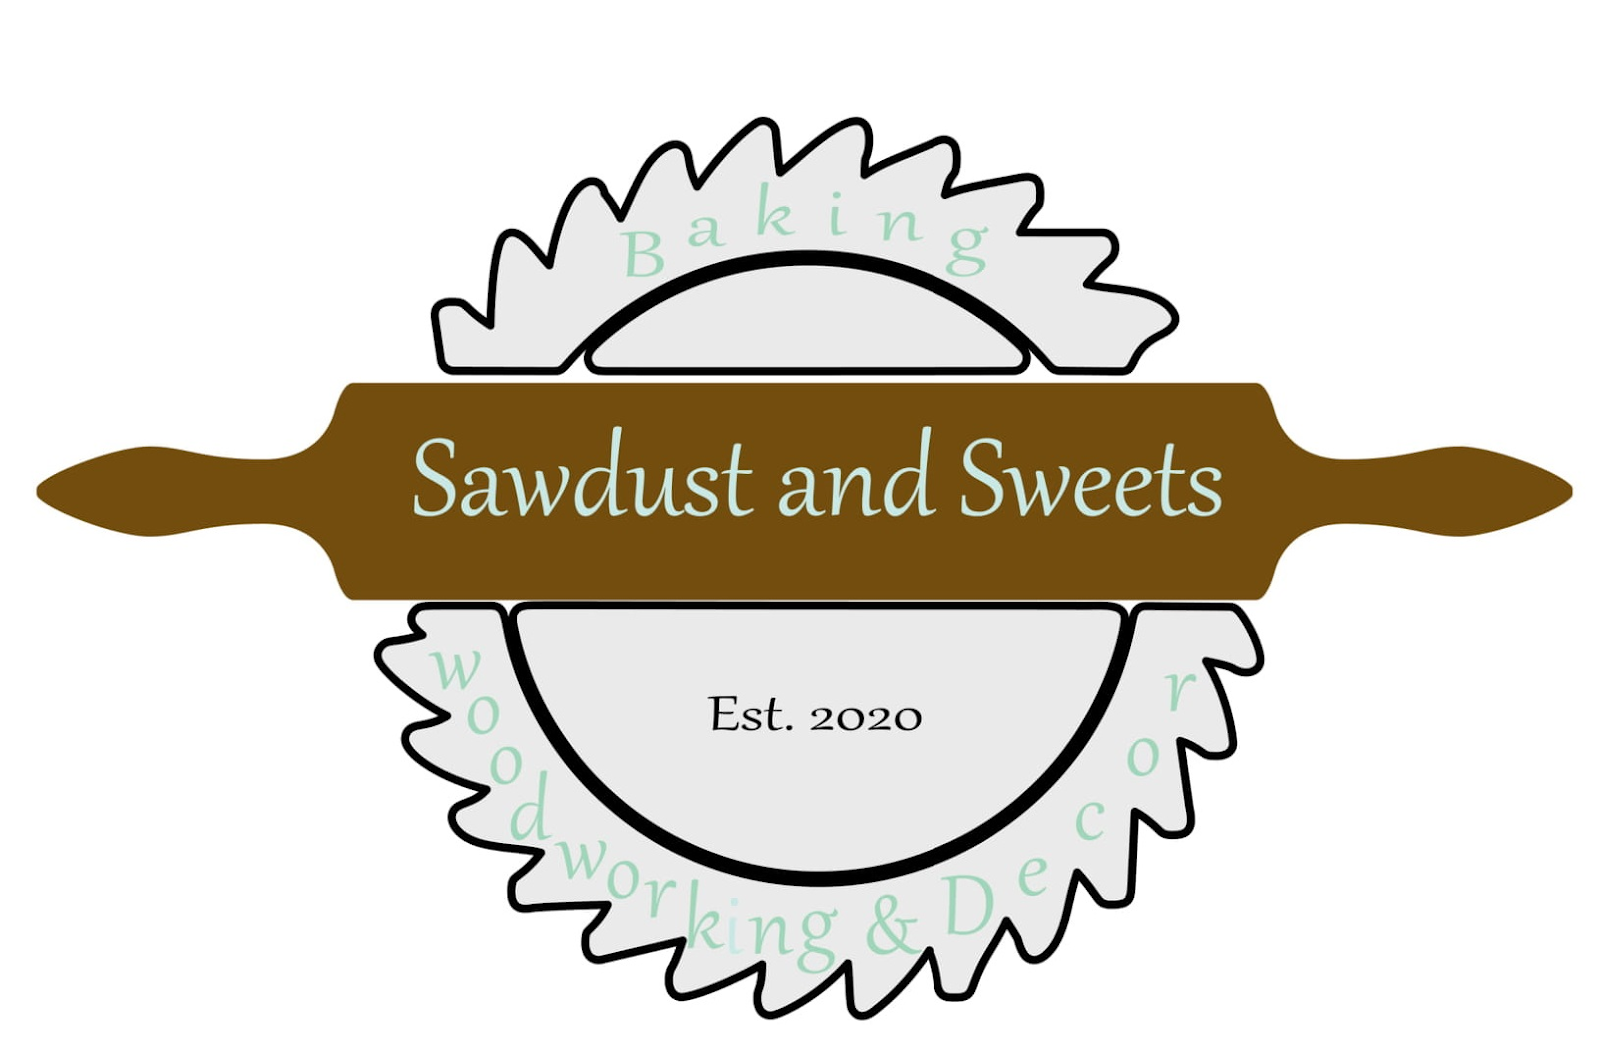 Sawdust and Sweets